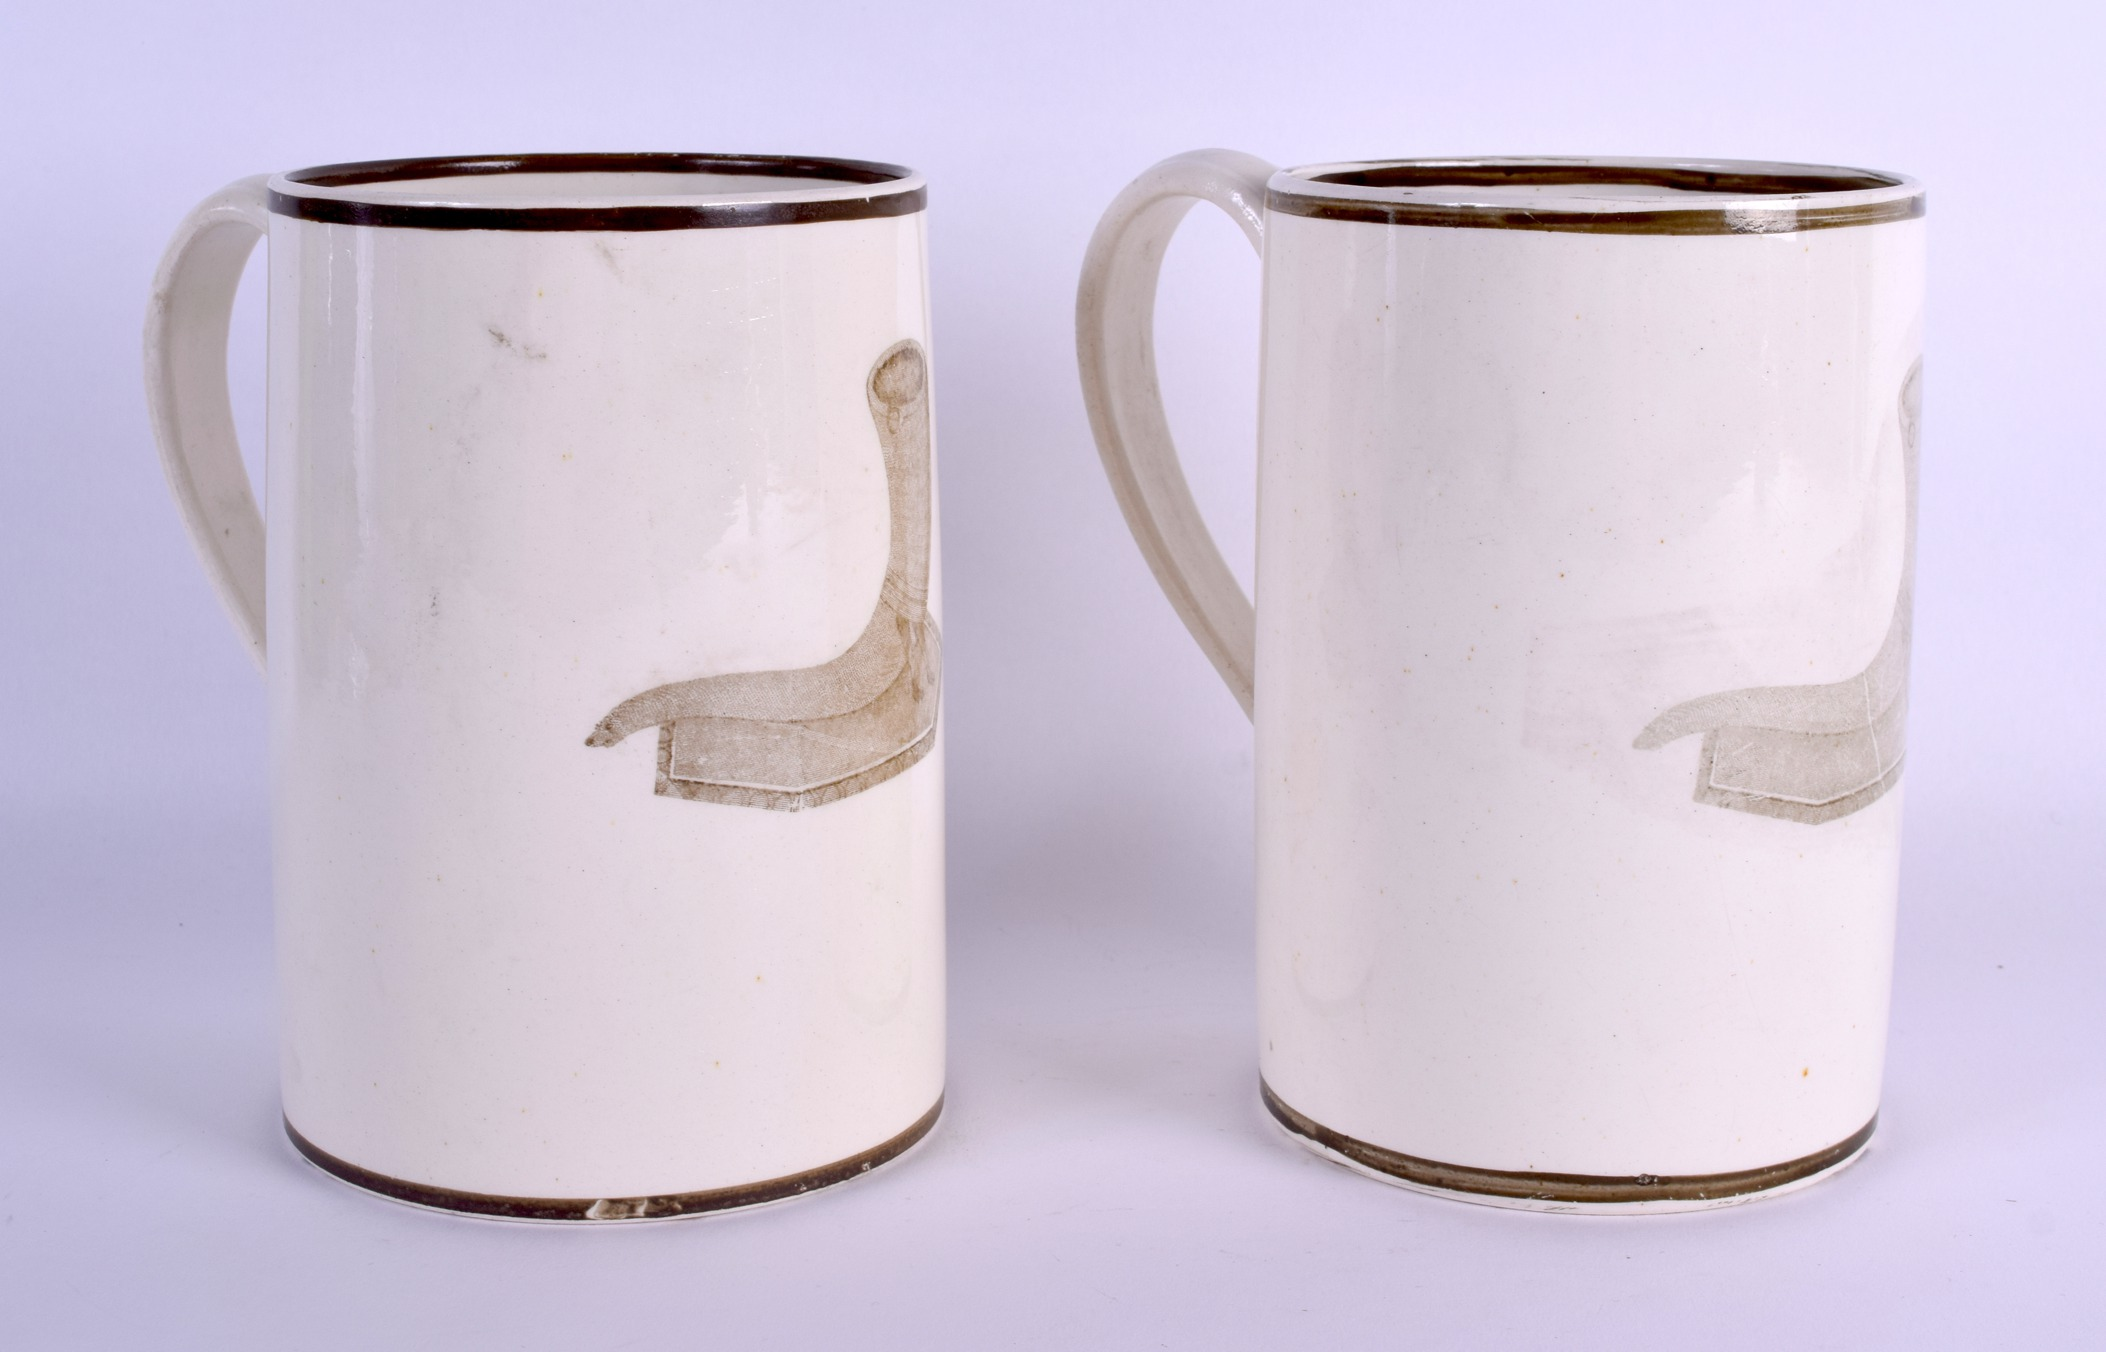 Lot 61 - A RARE PAIR OF EARLY 19TH CENTURY WEDGWOOD CREAMWARE MUGS decorated with cornucopia. 16 cm high.